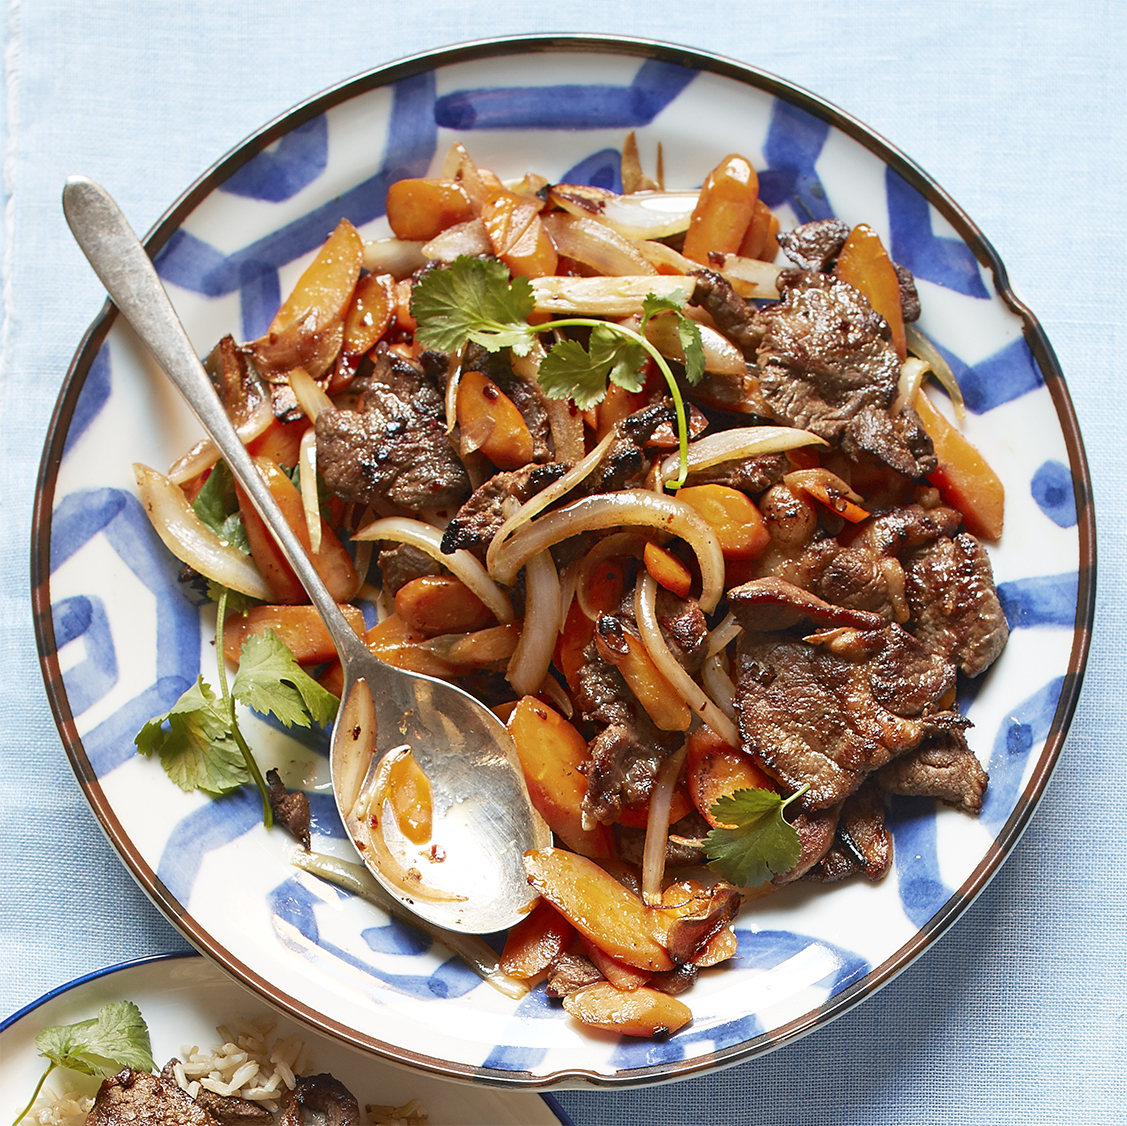 spicy lamb and carrot stir-fry